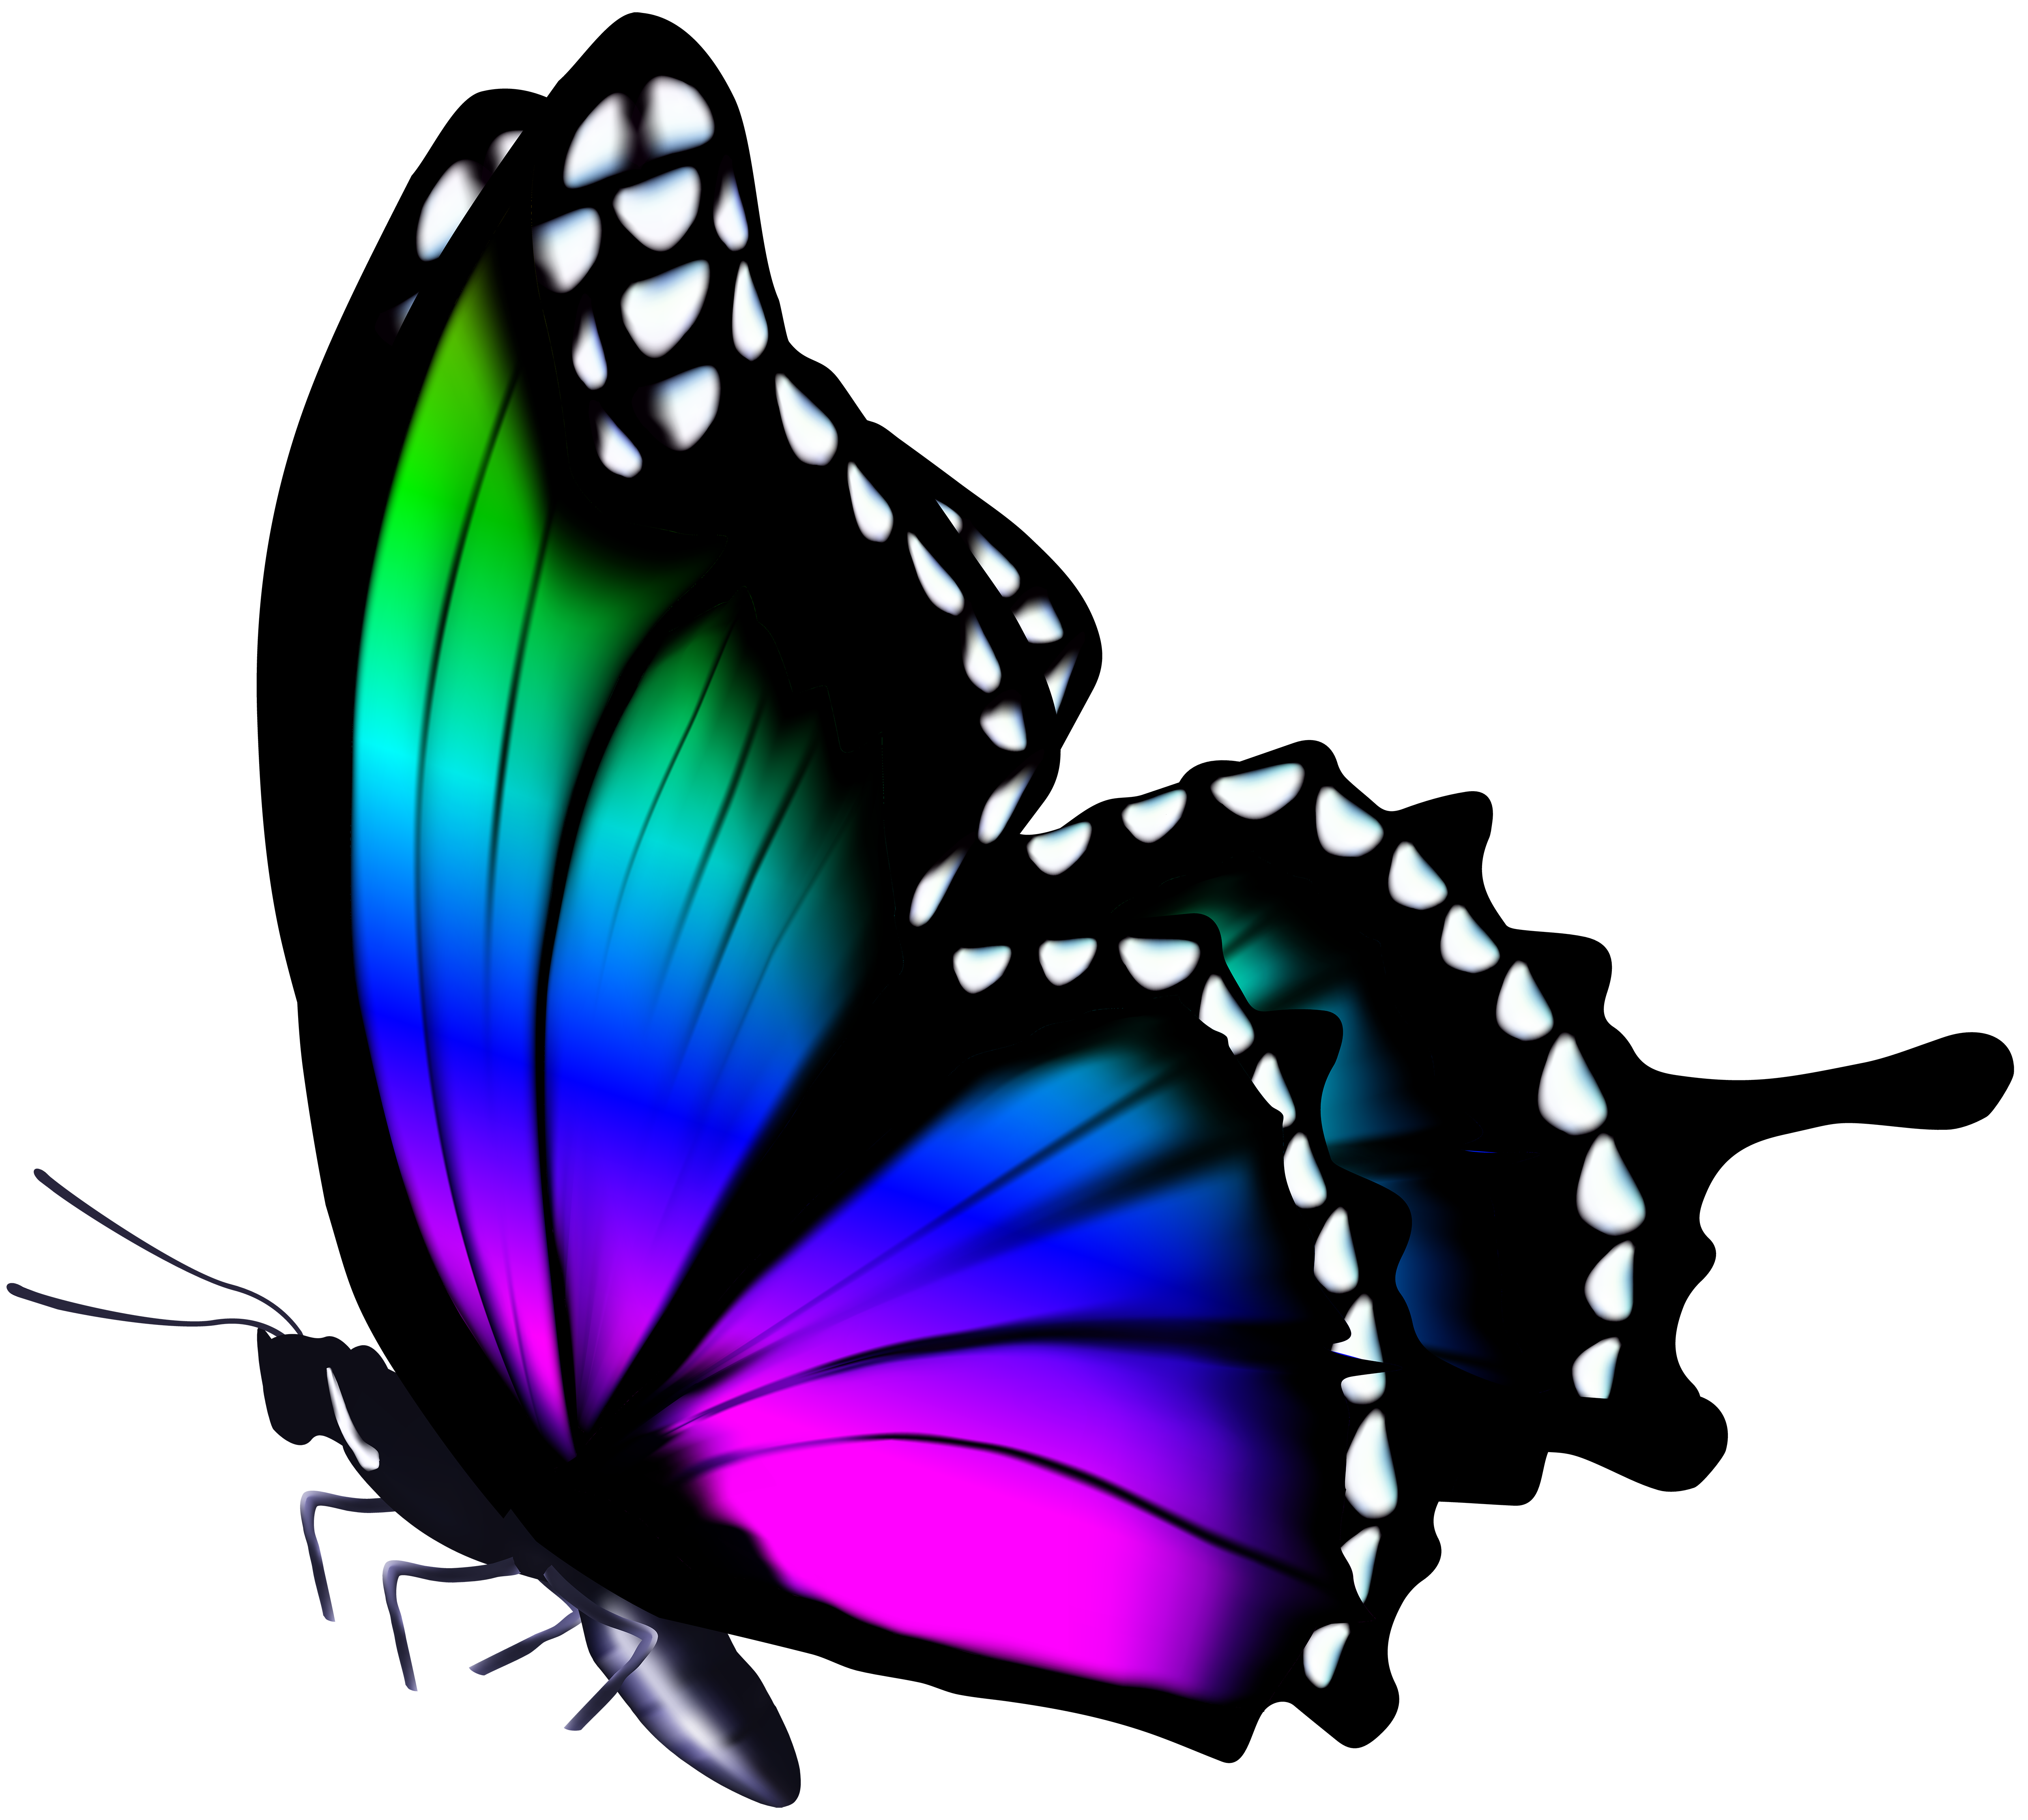 Colorful Butterfly Png Clip Art Image Gallery Yopriceville High Quality Images And Transpar Butterfly Art Painting Butterfly Painting Colorful Butterflies